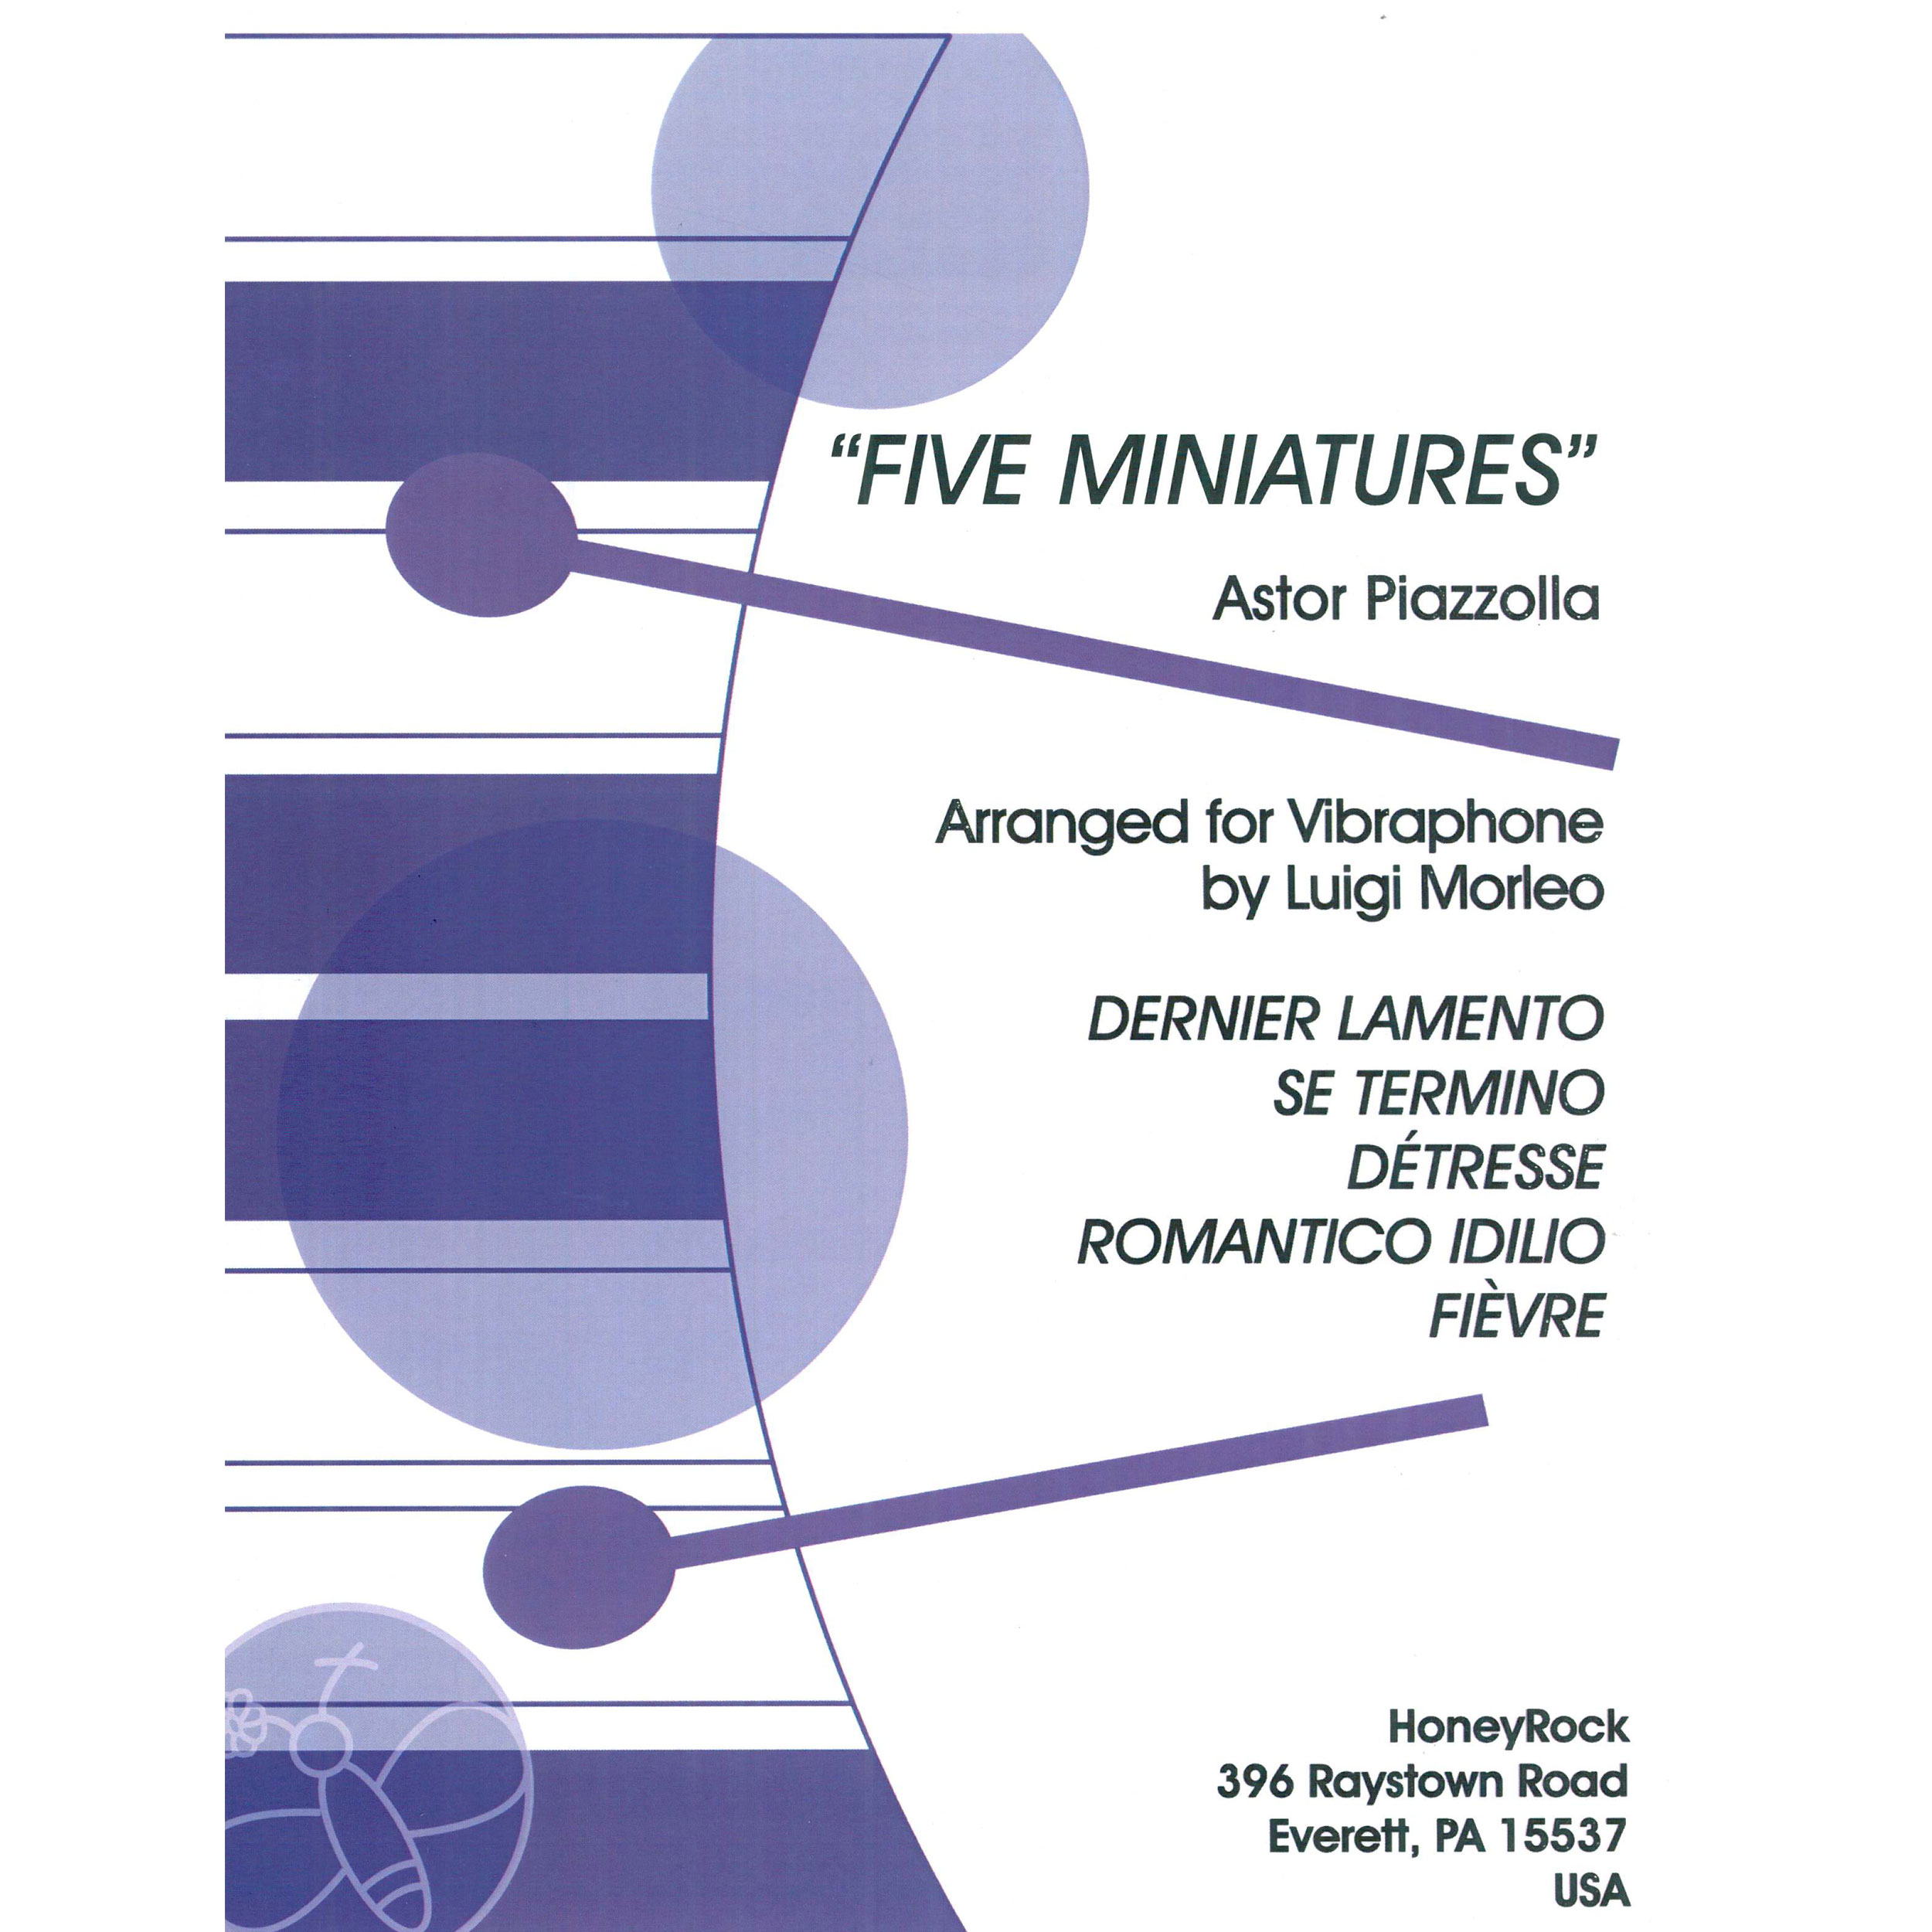 Five Miniatures by Astor Piazzolla arr. Luigi Morleo